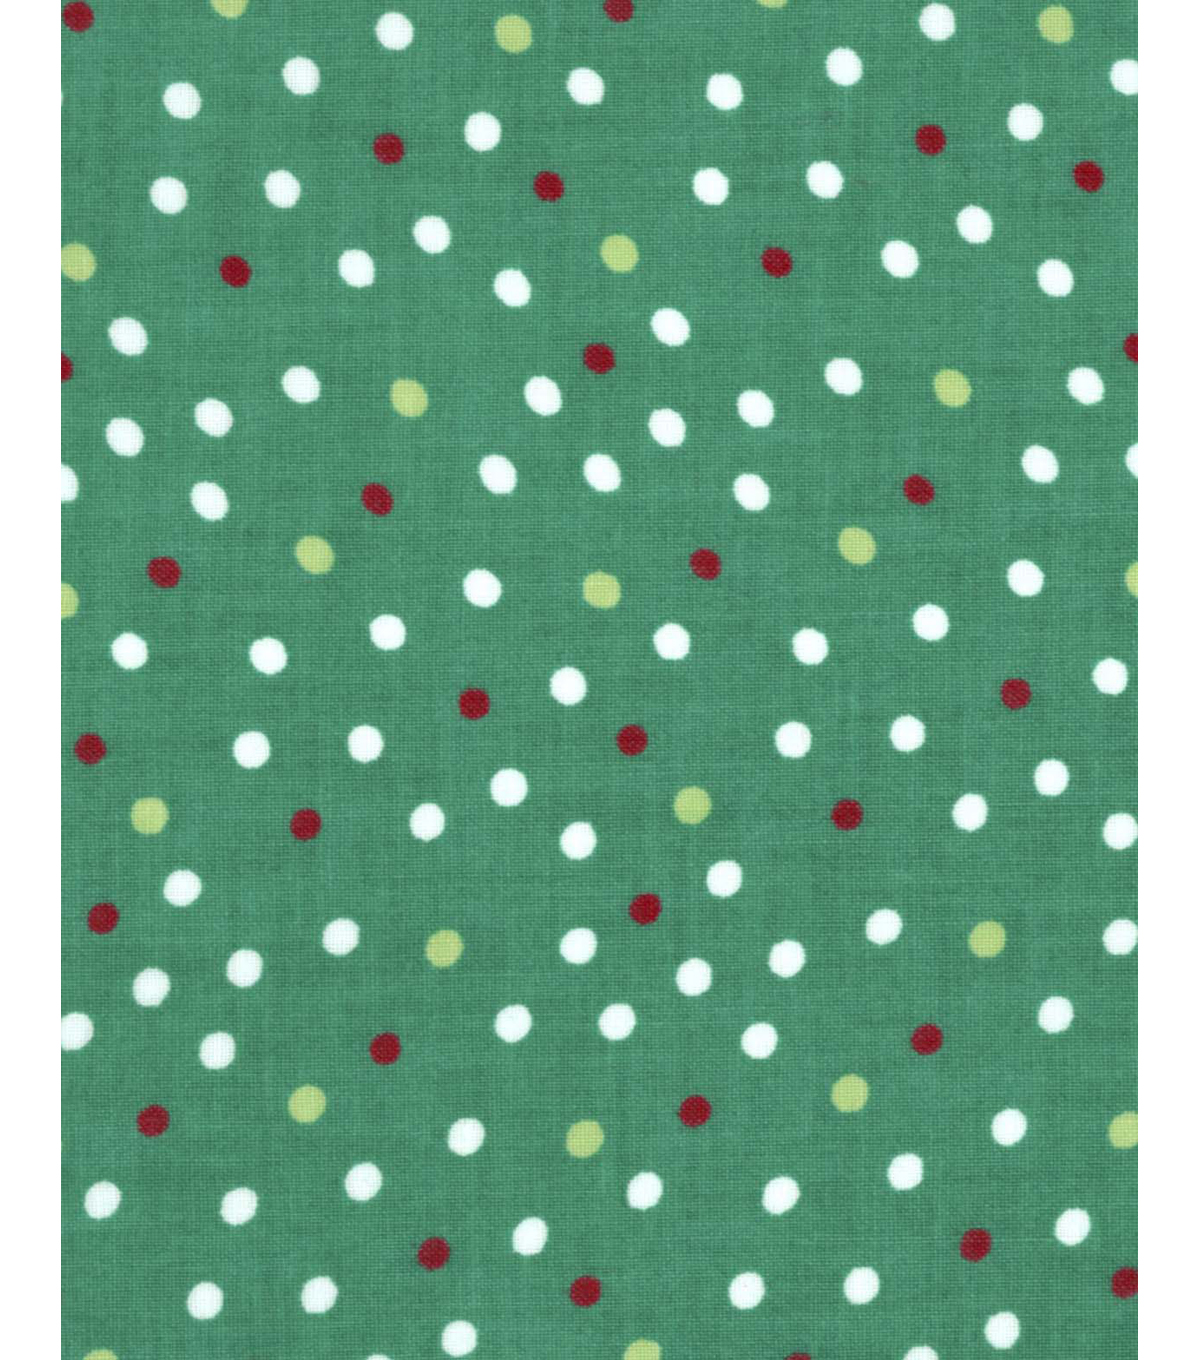 Holiday Showcase™ Christmas Cotton Fabric 43''-Dots on Green